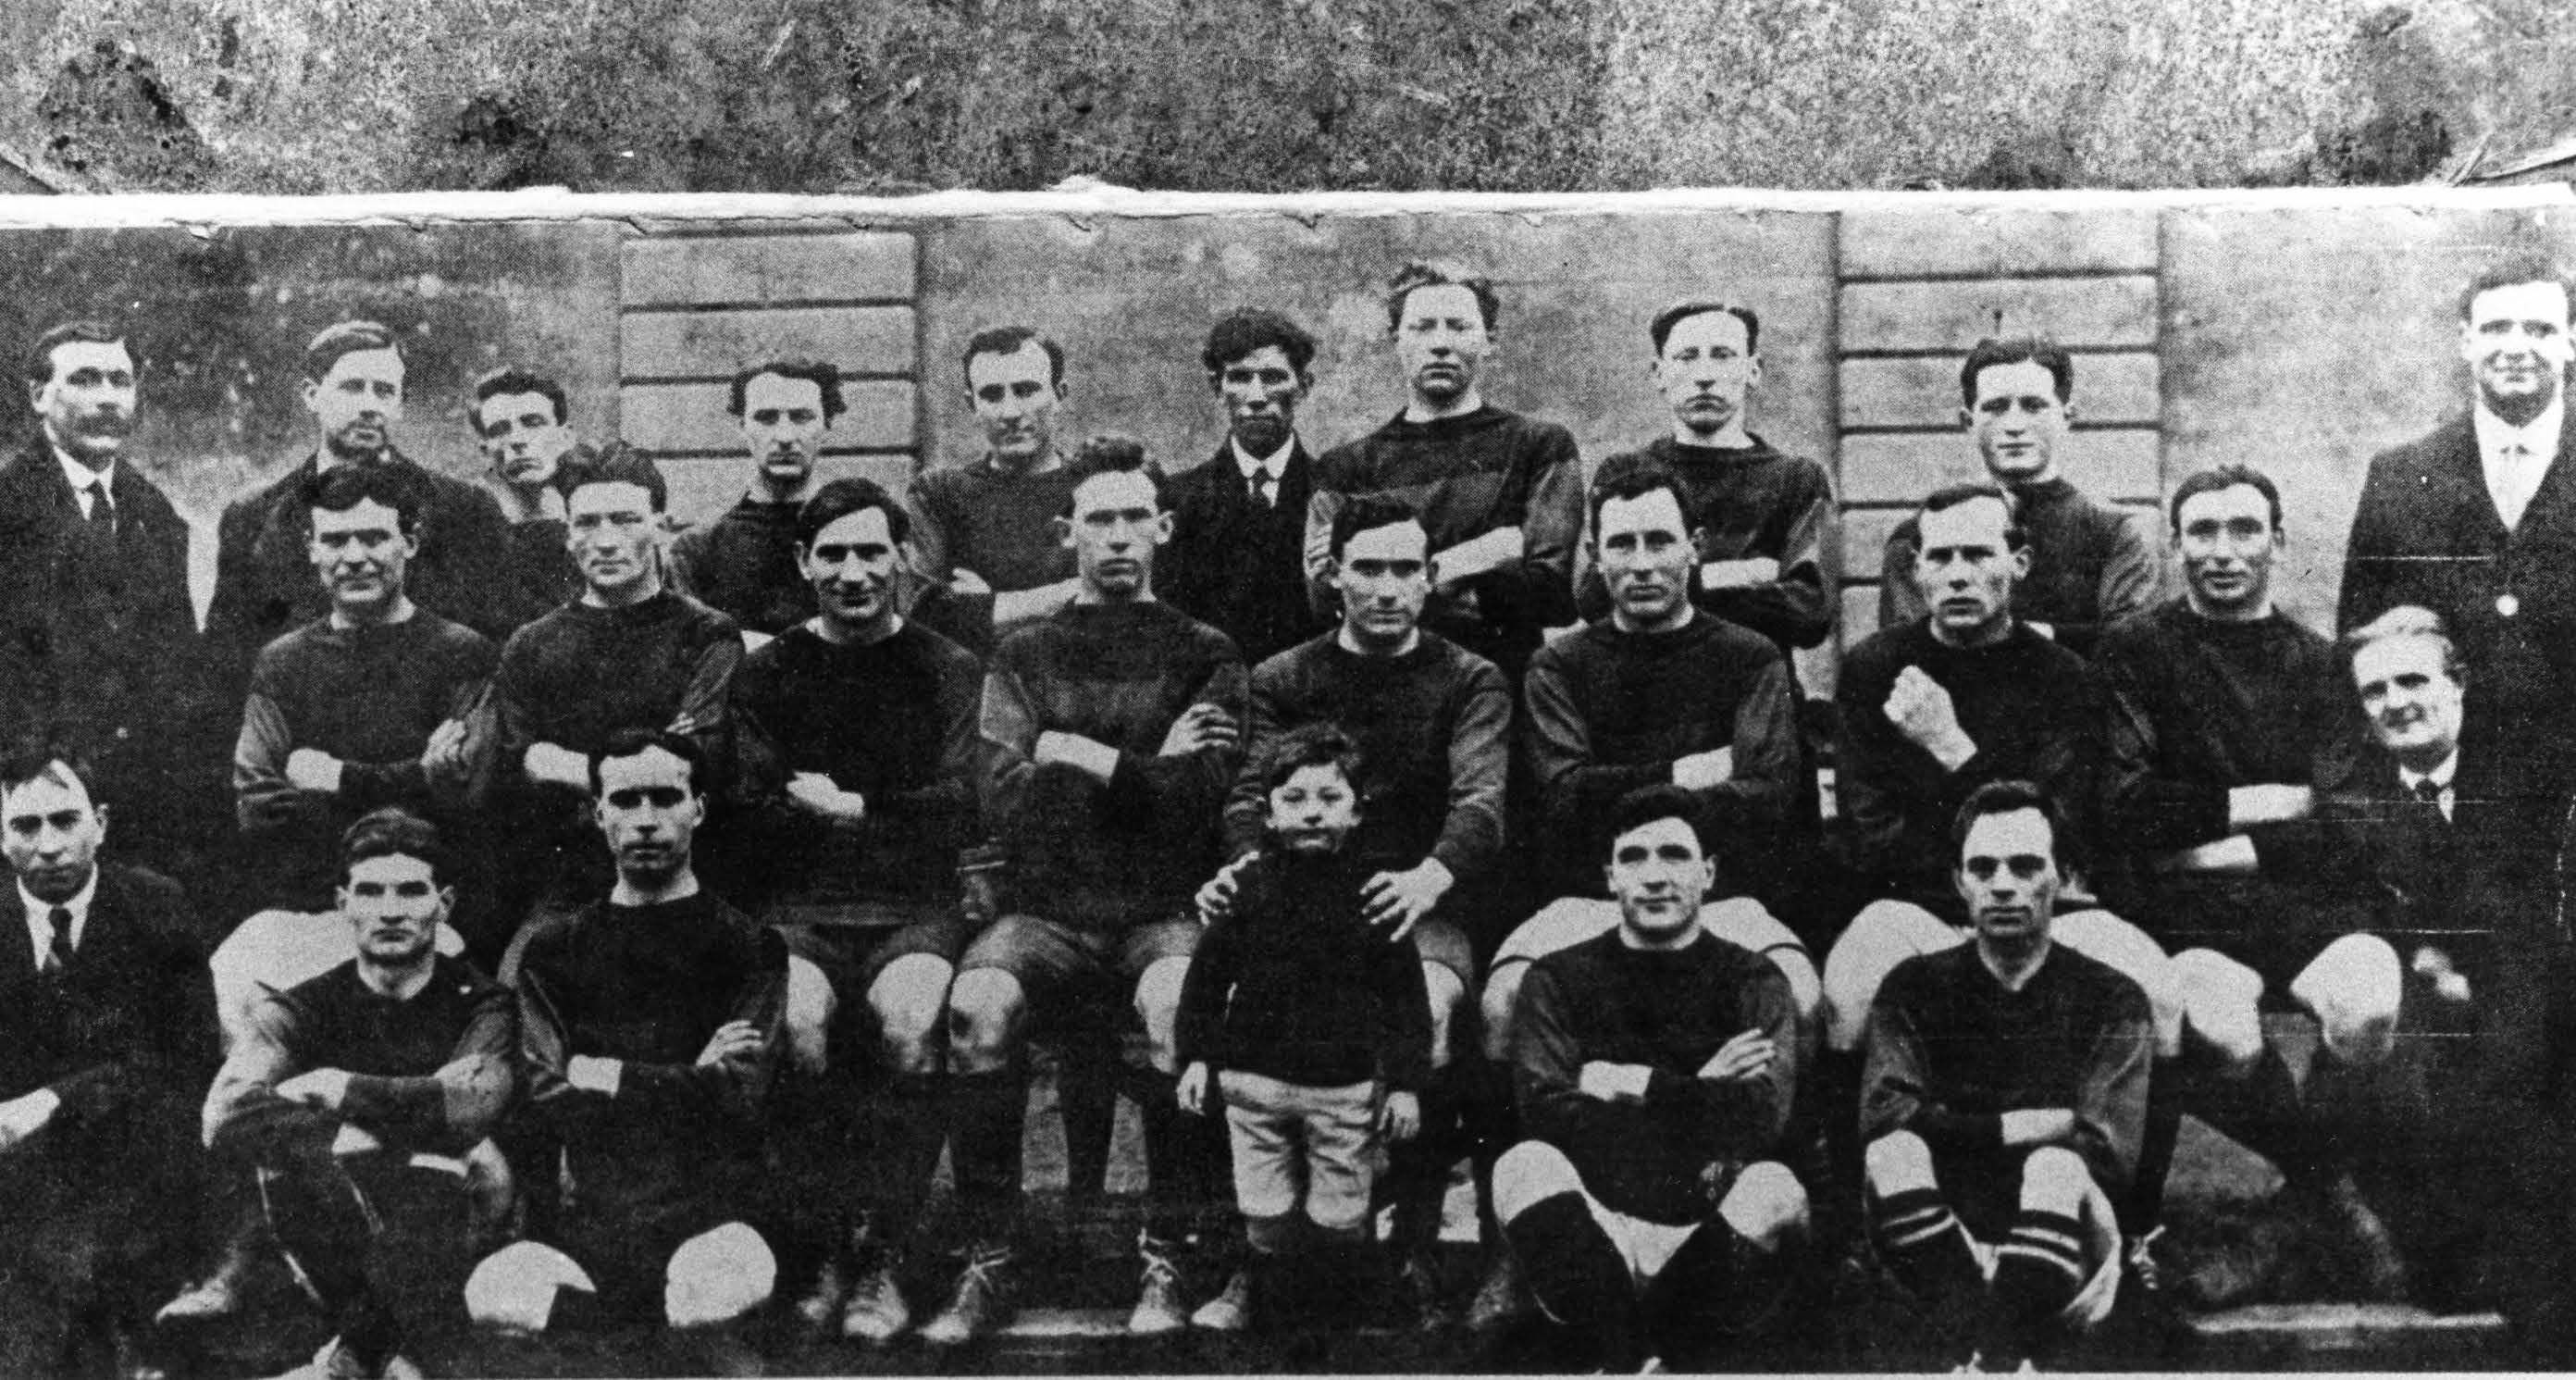 Wexford (Blues & Whites) 1918 Football All-Ireland Champions